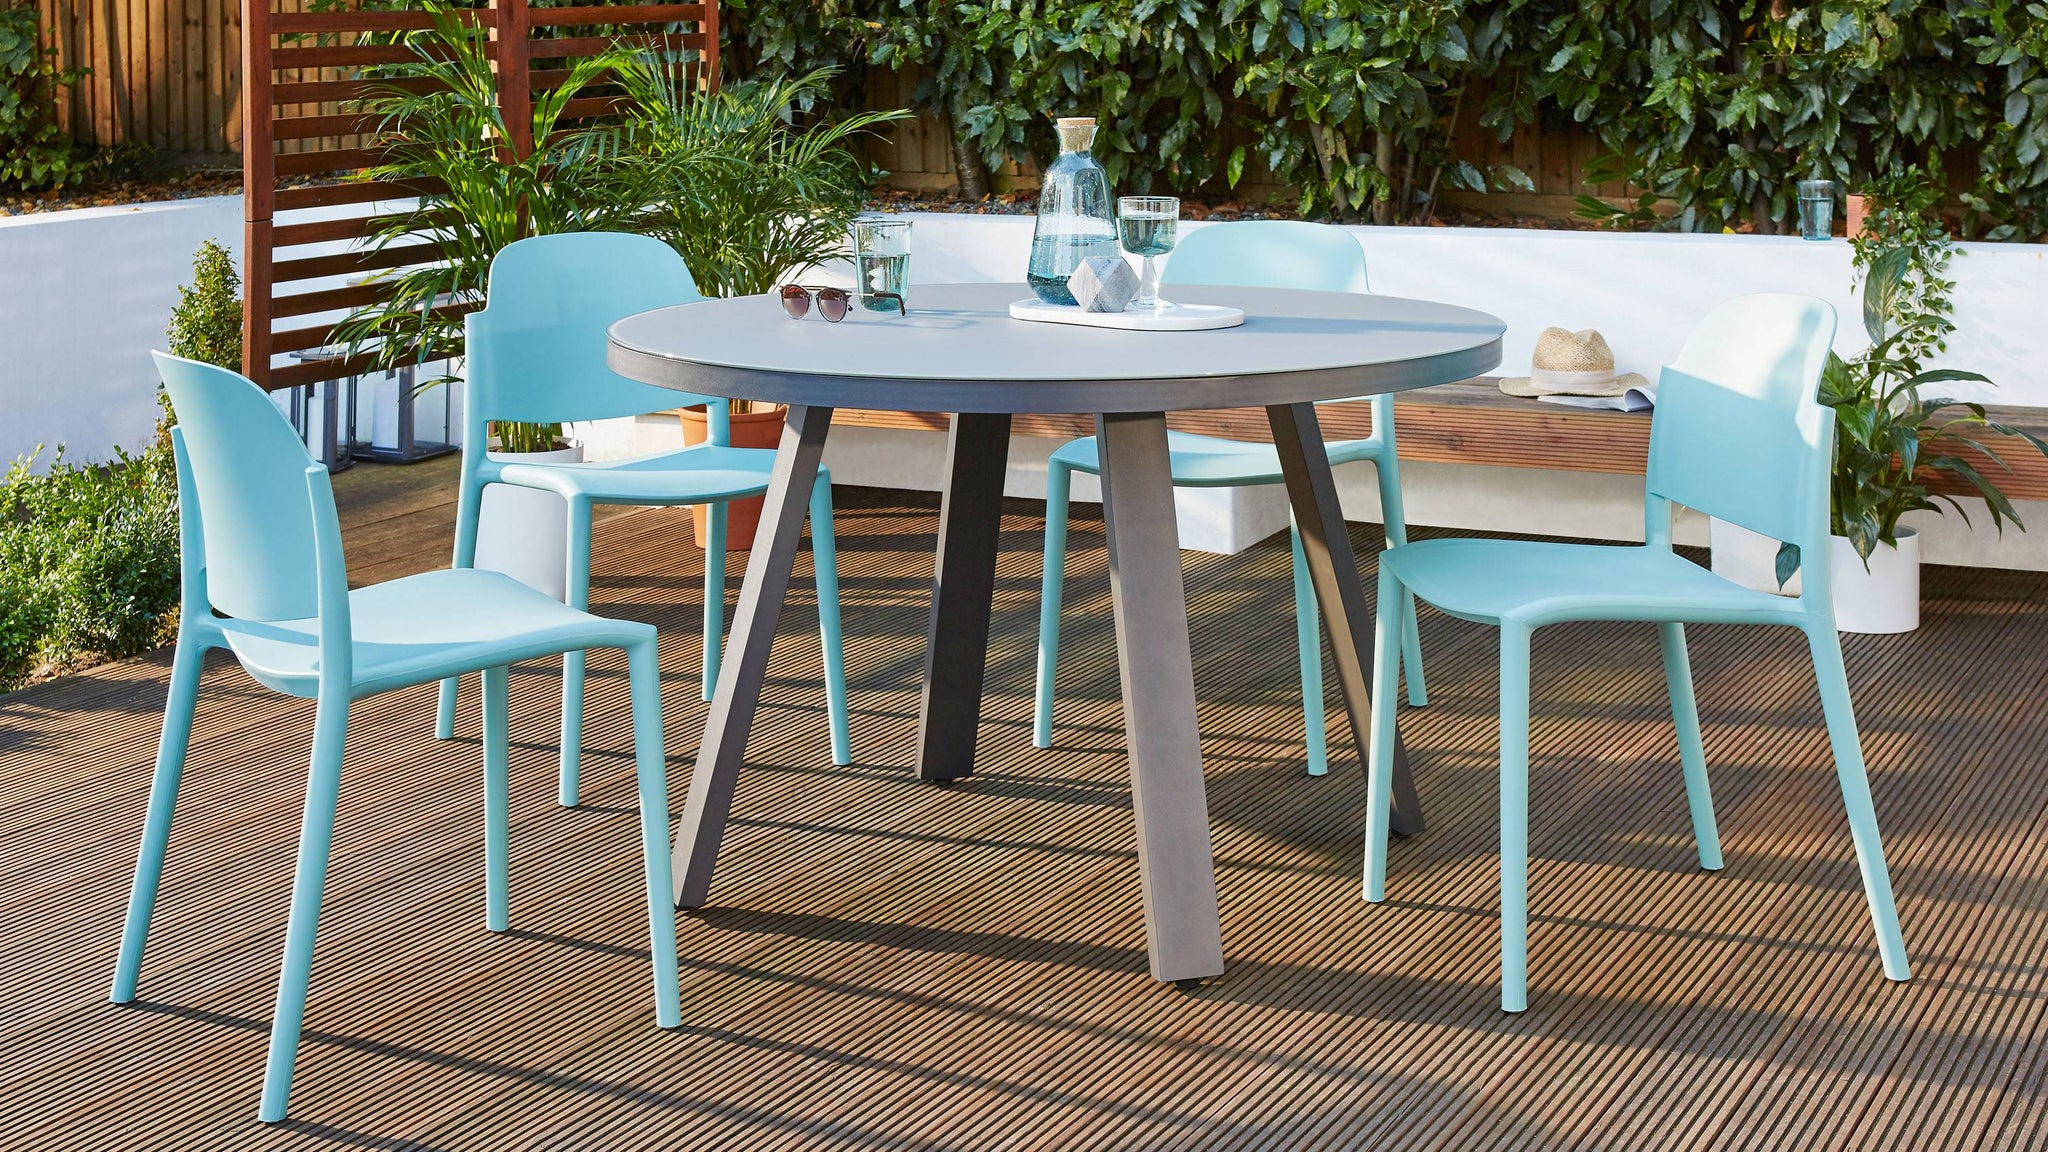 Z DROPPED - Koko Grey Round 4 Seater Garden Dining Table